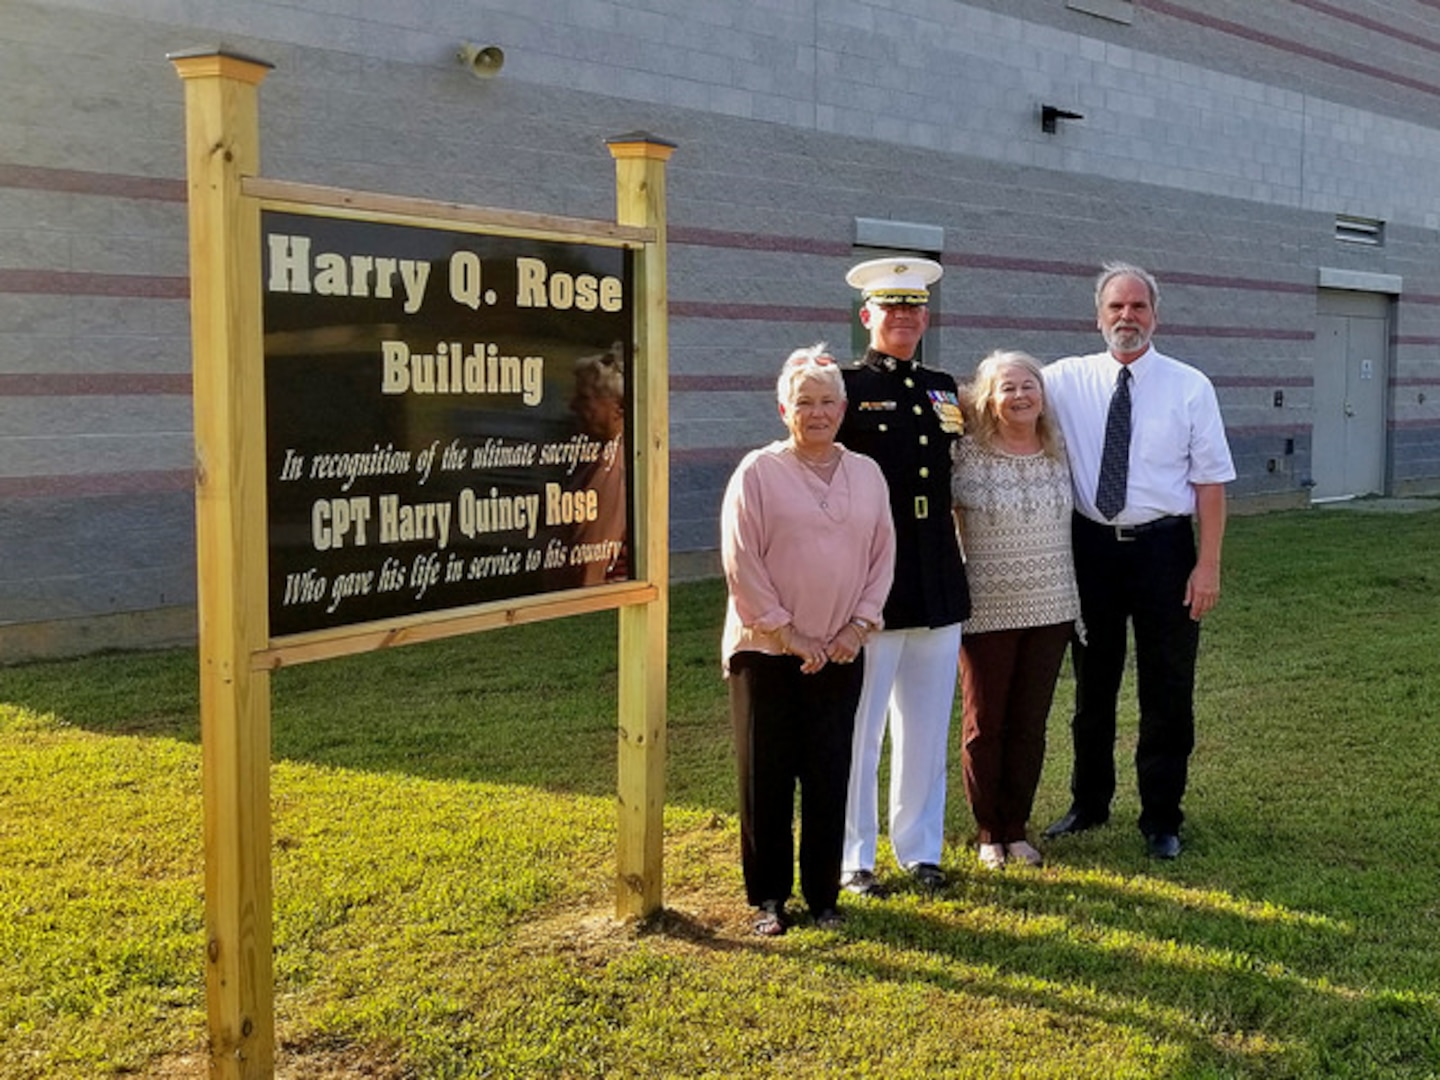 (L-R) Helen Rose Creel, Lt. Col. Harry Gardner, Phyllis Rose Gardner and Albert Lee Creel stand next to the sign commemorating Capt. Harry Q. Rose, Sept. 22, 2018, at the Virginia National Guard's Officer Candidate School building at Fort Pickett, Virginia. (U.S. Army National Guard Photo by Staff Sgt. Matt Lyman)